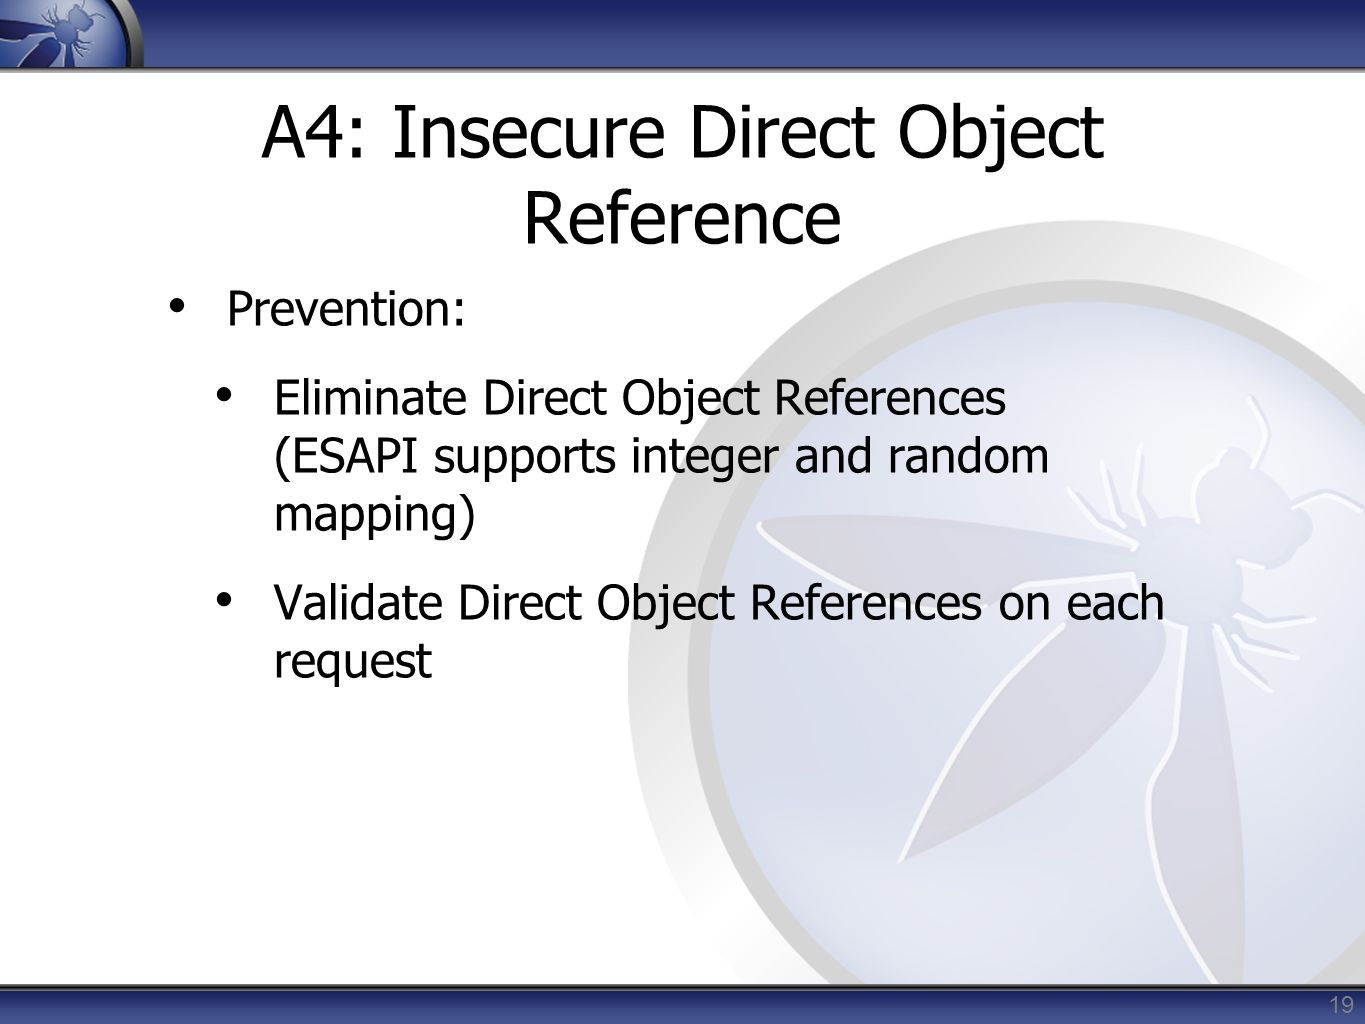 A4: Insecure Direct Object Reference